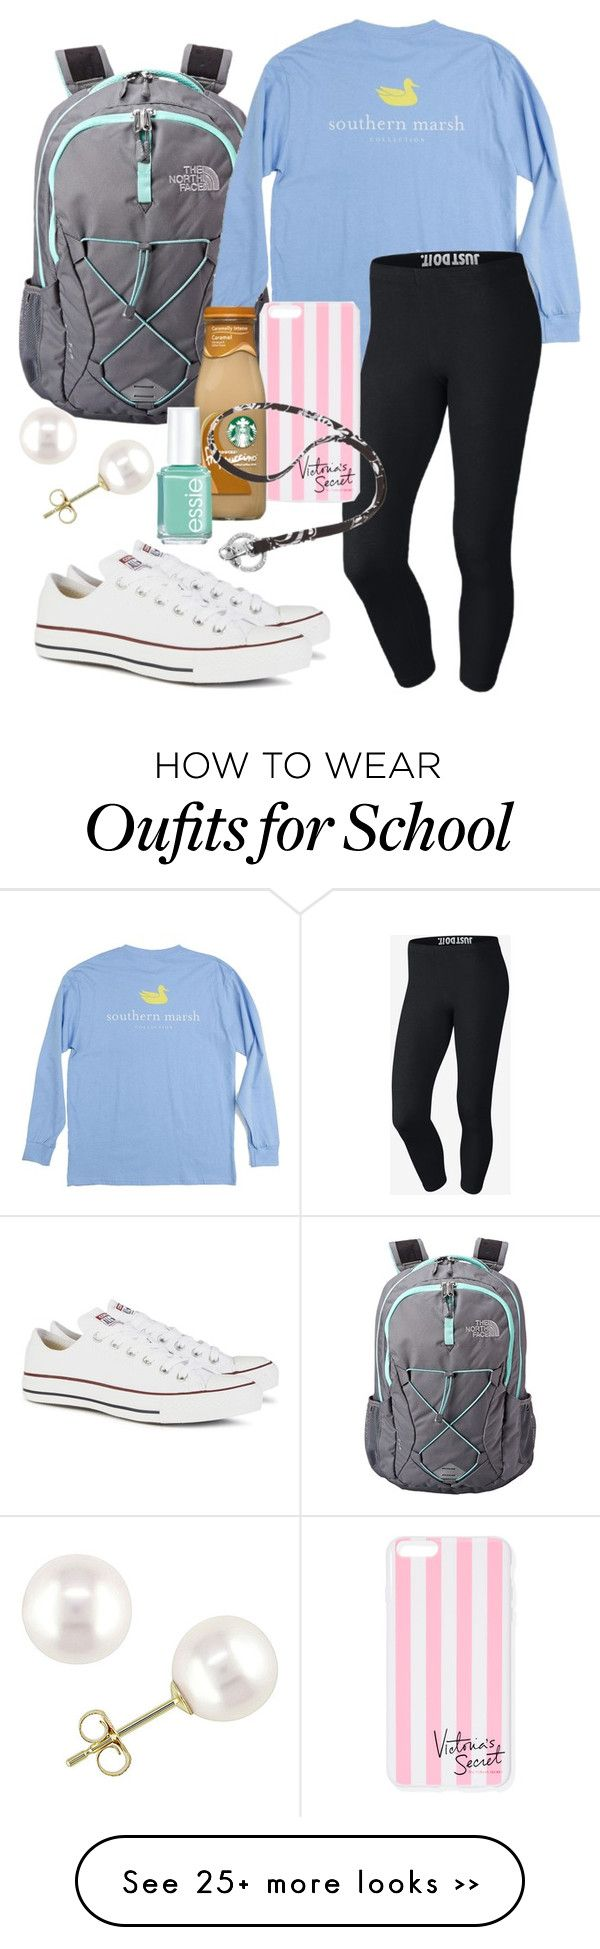 """school"" by sofiaestrada on Polyvore"